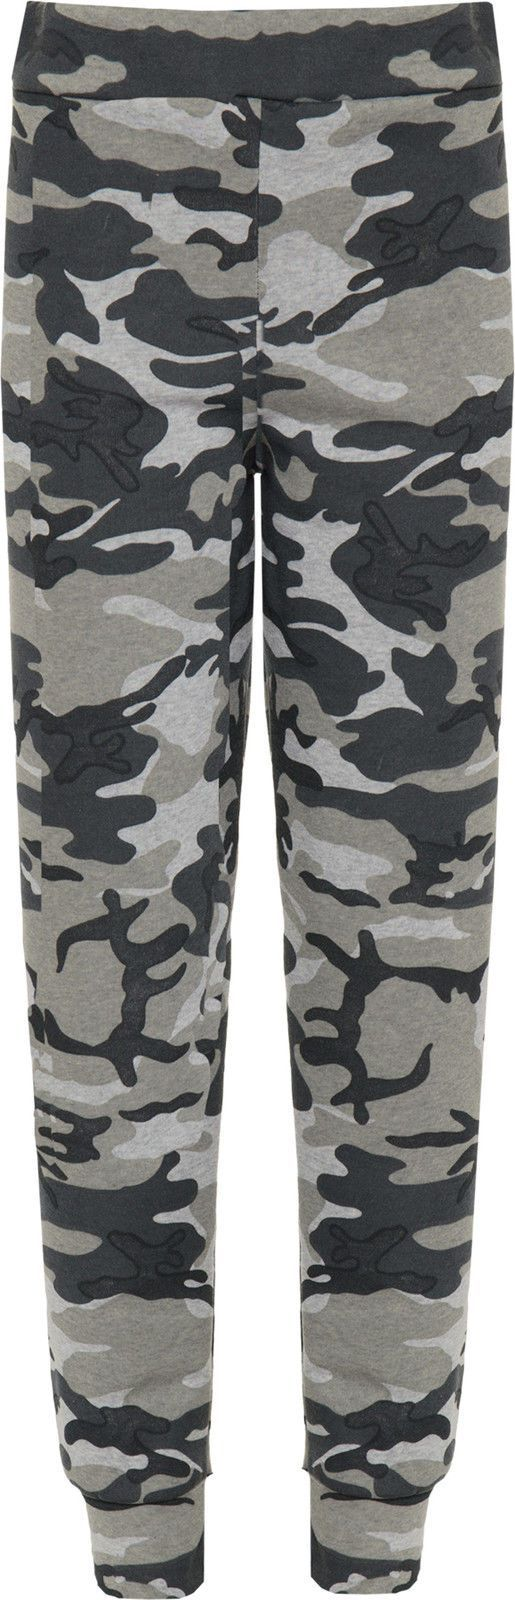 Womens Camouflage Jogging Bottoms Ladies Print Full Length Thick Trousers Pants